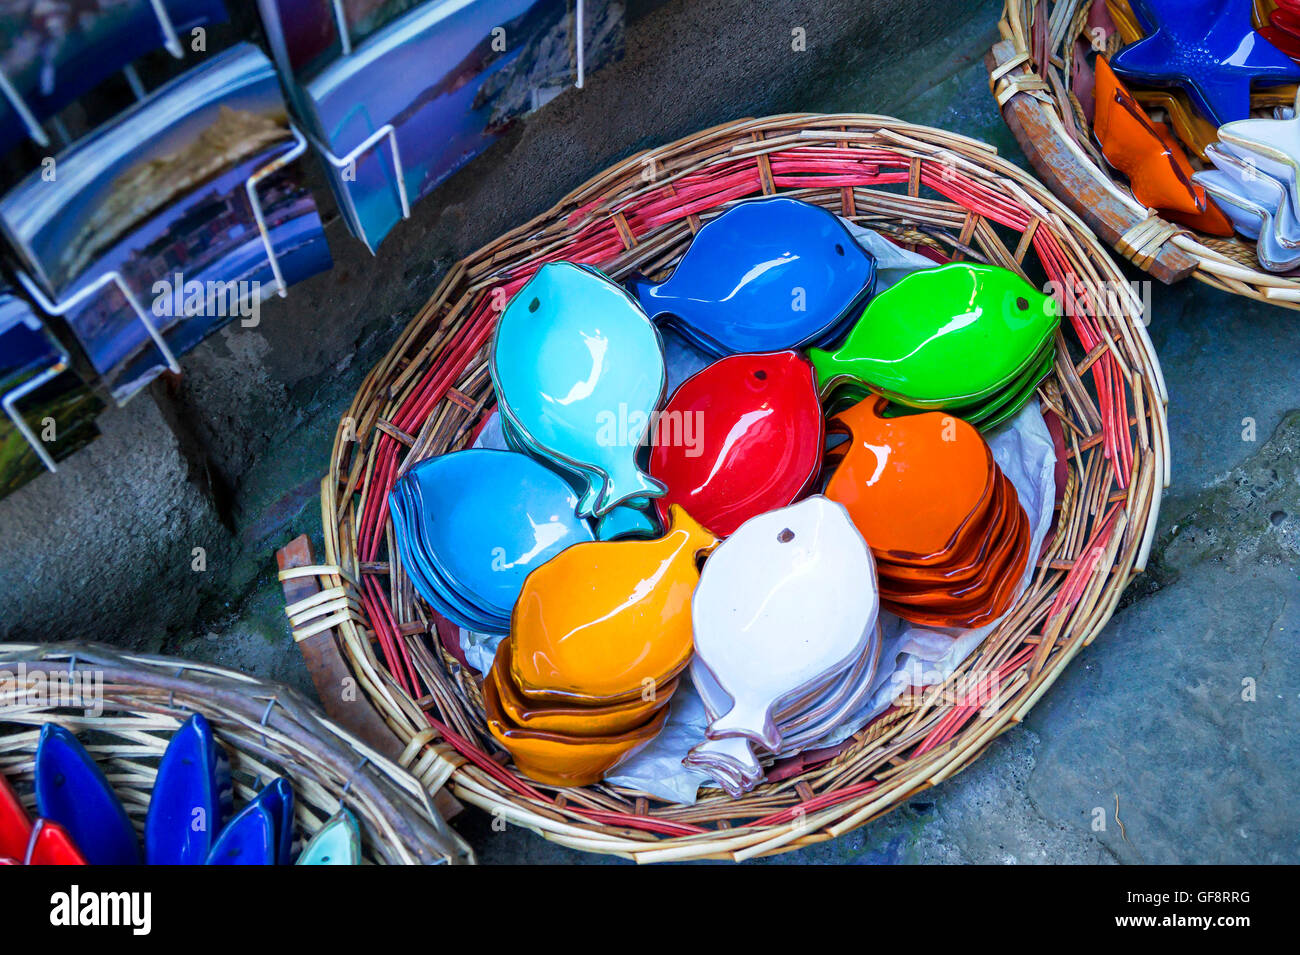 Traditional handmade ceramics products in Cinque Terre region Italy. Colorful plates in fish form. & Traditional handmade ceramics products in Cinque Terre region Italy ...